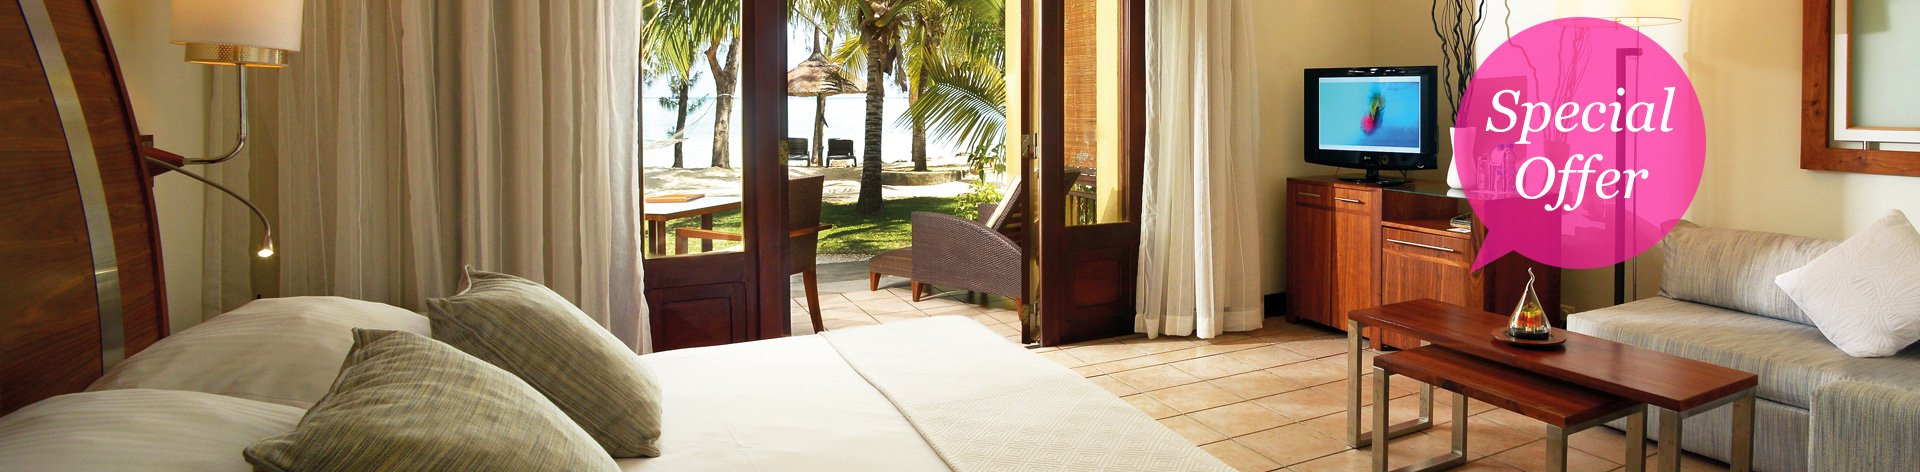 CONSTANCE LE PRINCE MAURICE MAURITIUS Tactical Special Offer